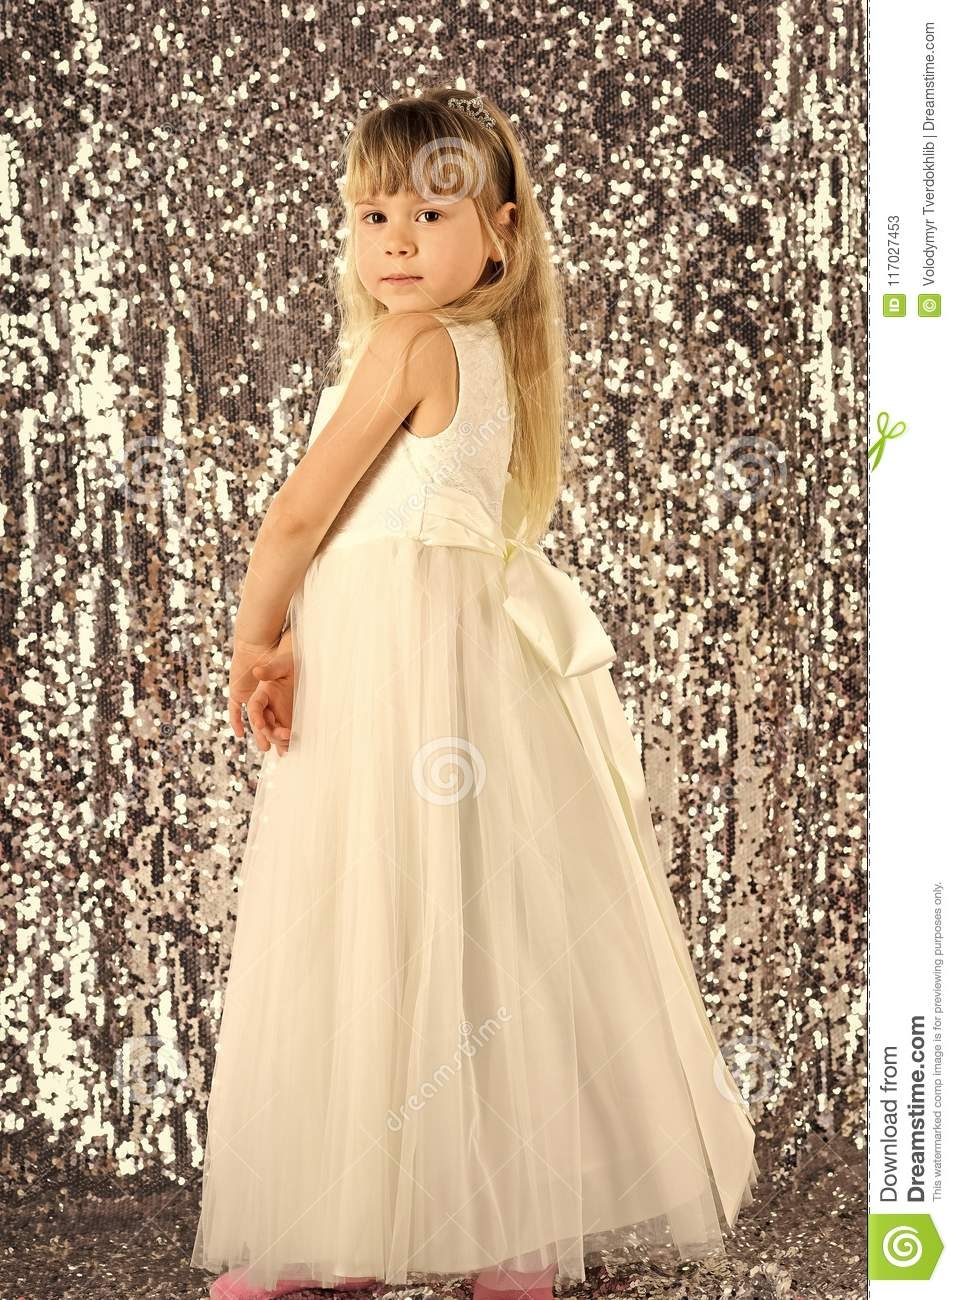 Cute Little Baby Girl Fashion Pretty Model Blonde Curly Lady Hair Funny Child Birthday Party Fun Children Room Stock Image Image Of Hairdresser Face 117027453